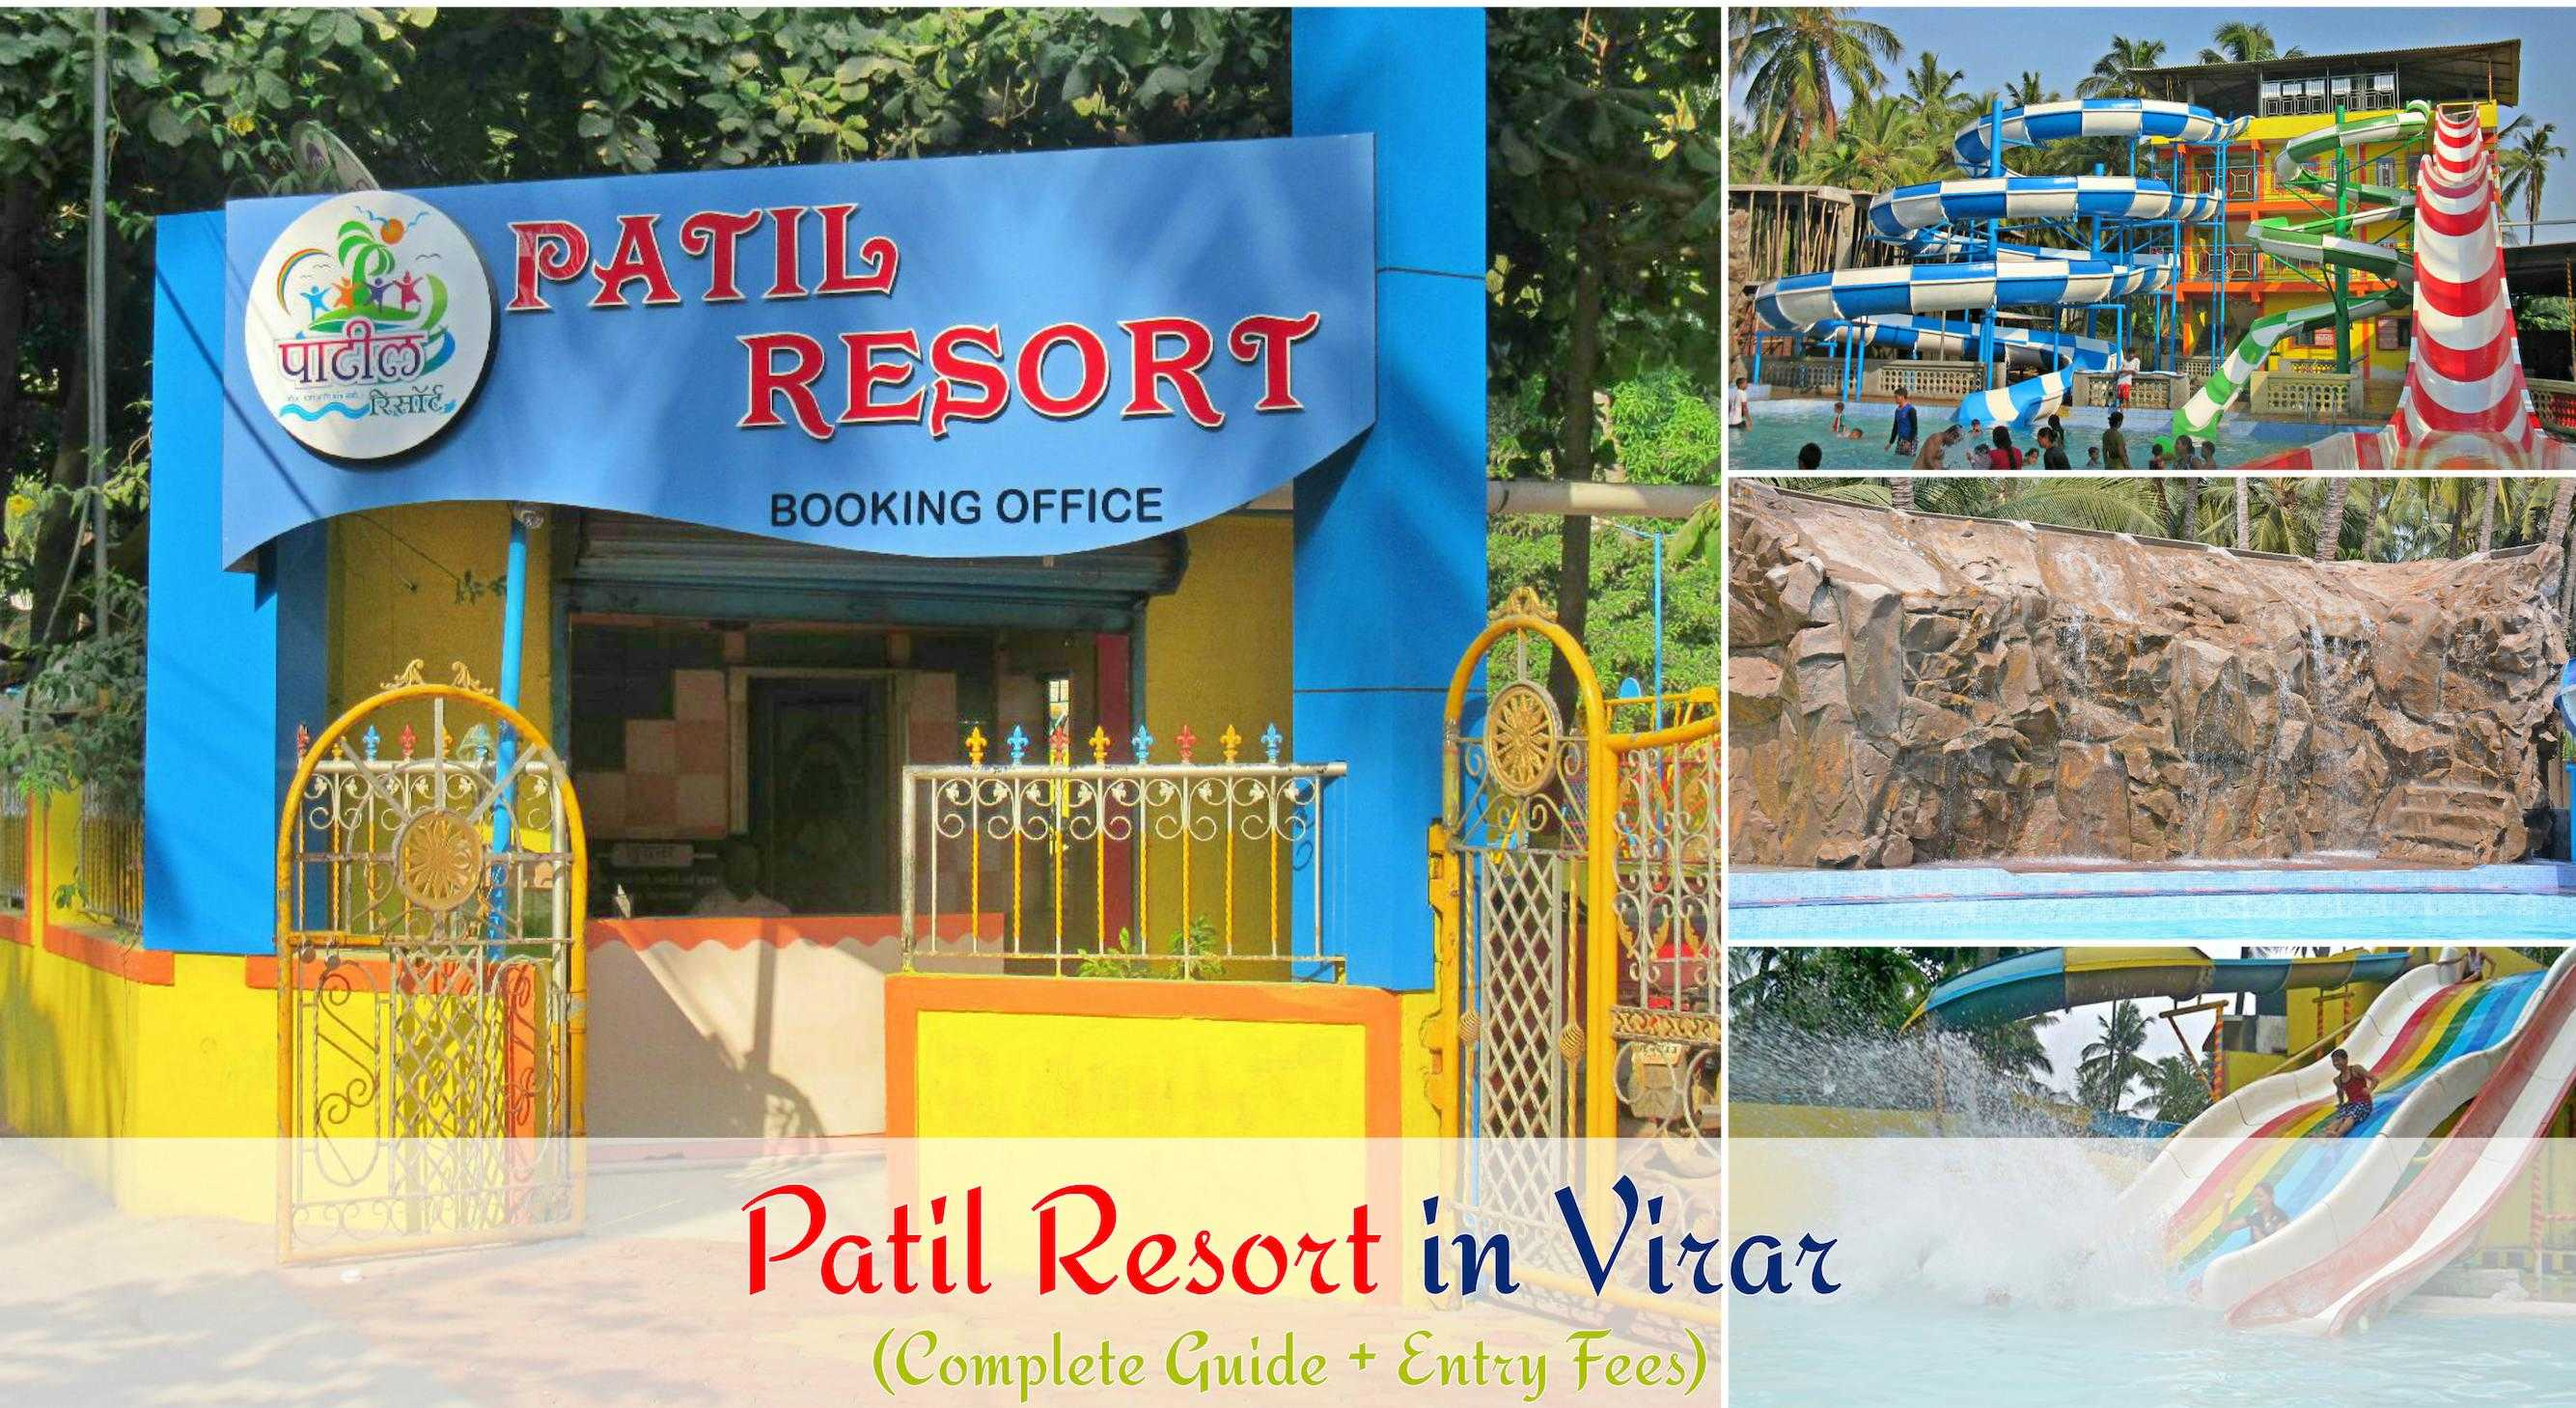 patil-resort-virar.